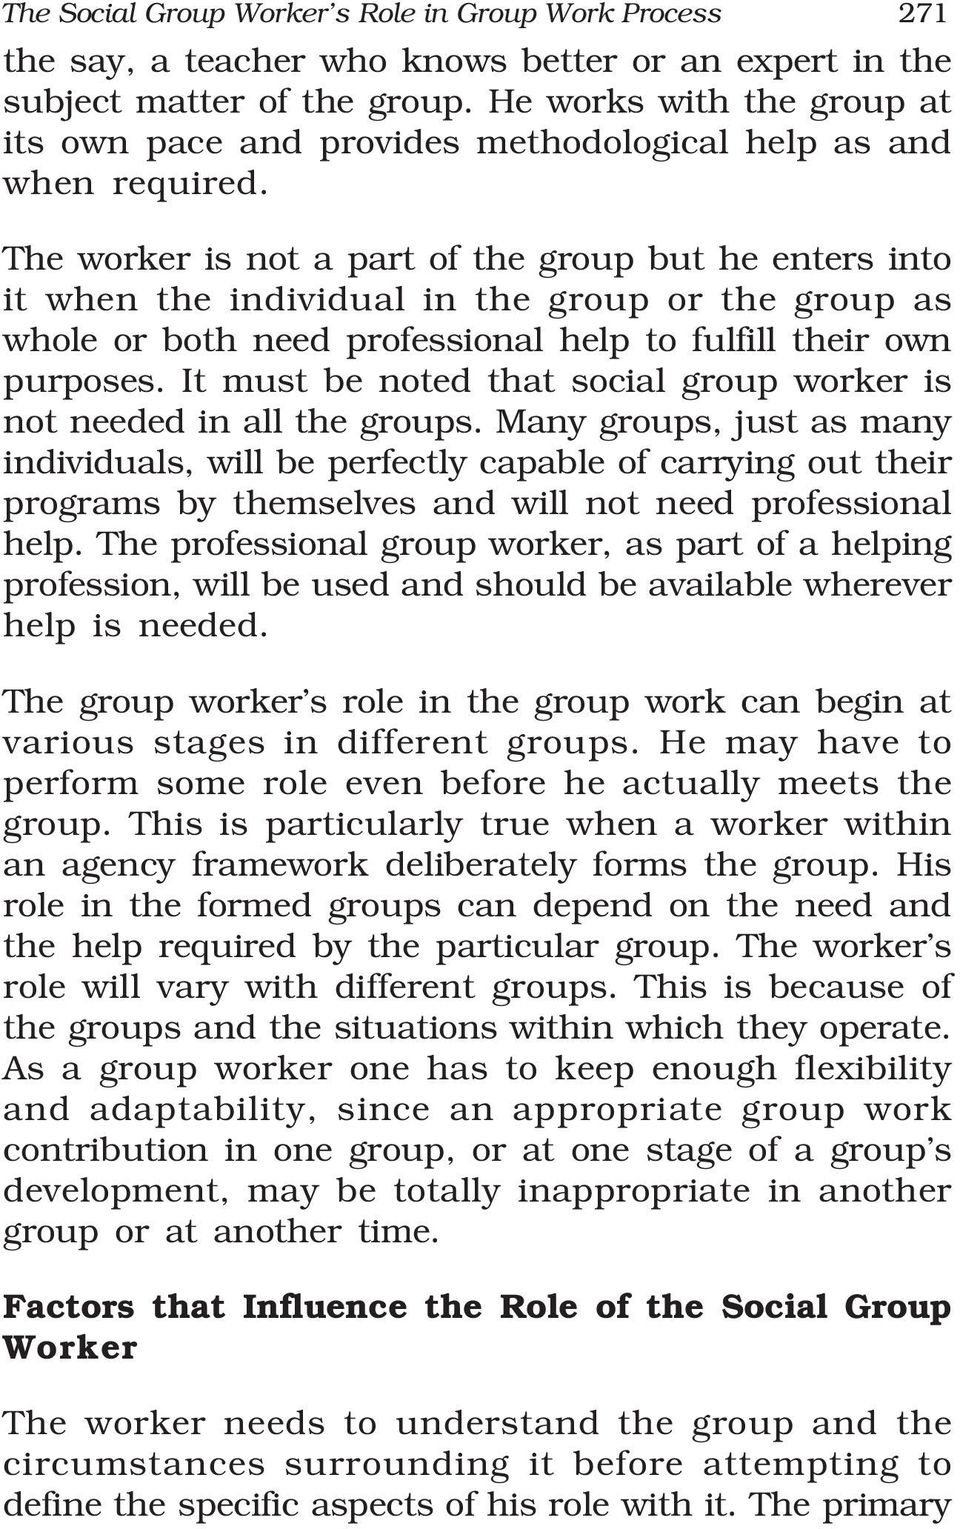 The worker is not a part of the group but he enters into it when the individual in the group or the group as whole or both need professional help to fulfill their own purposes.